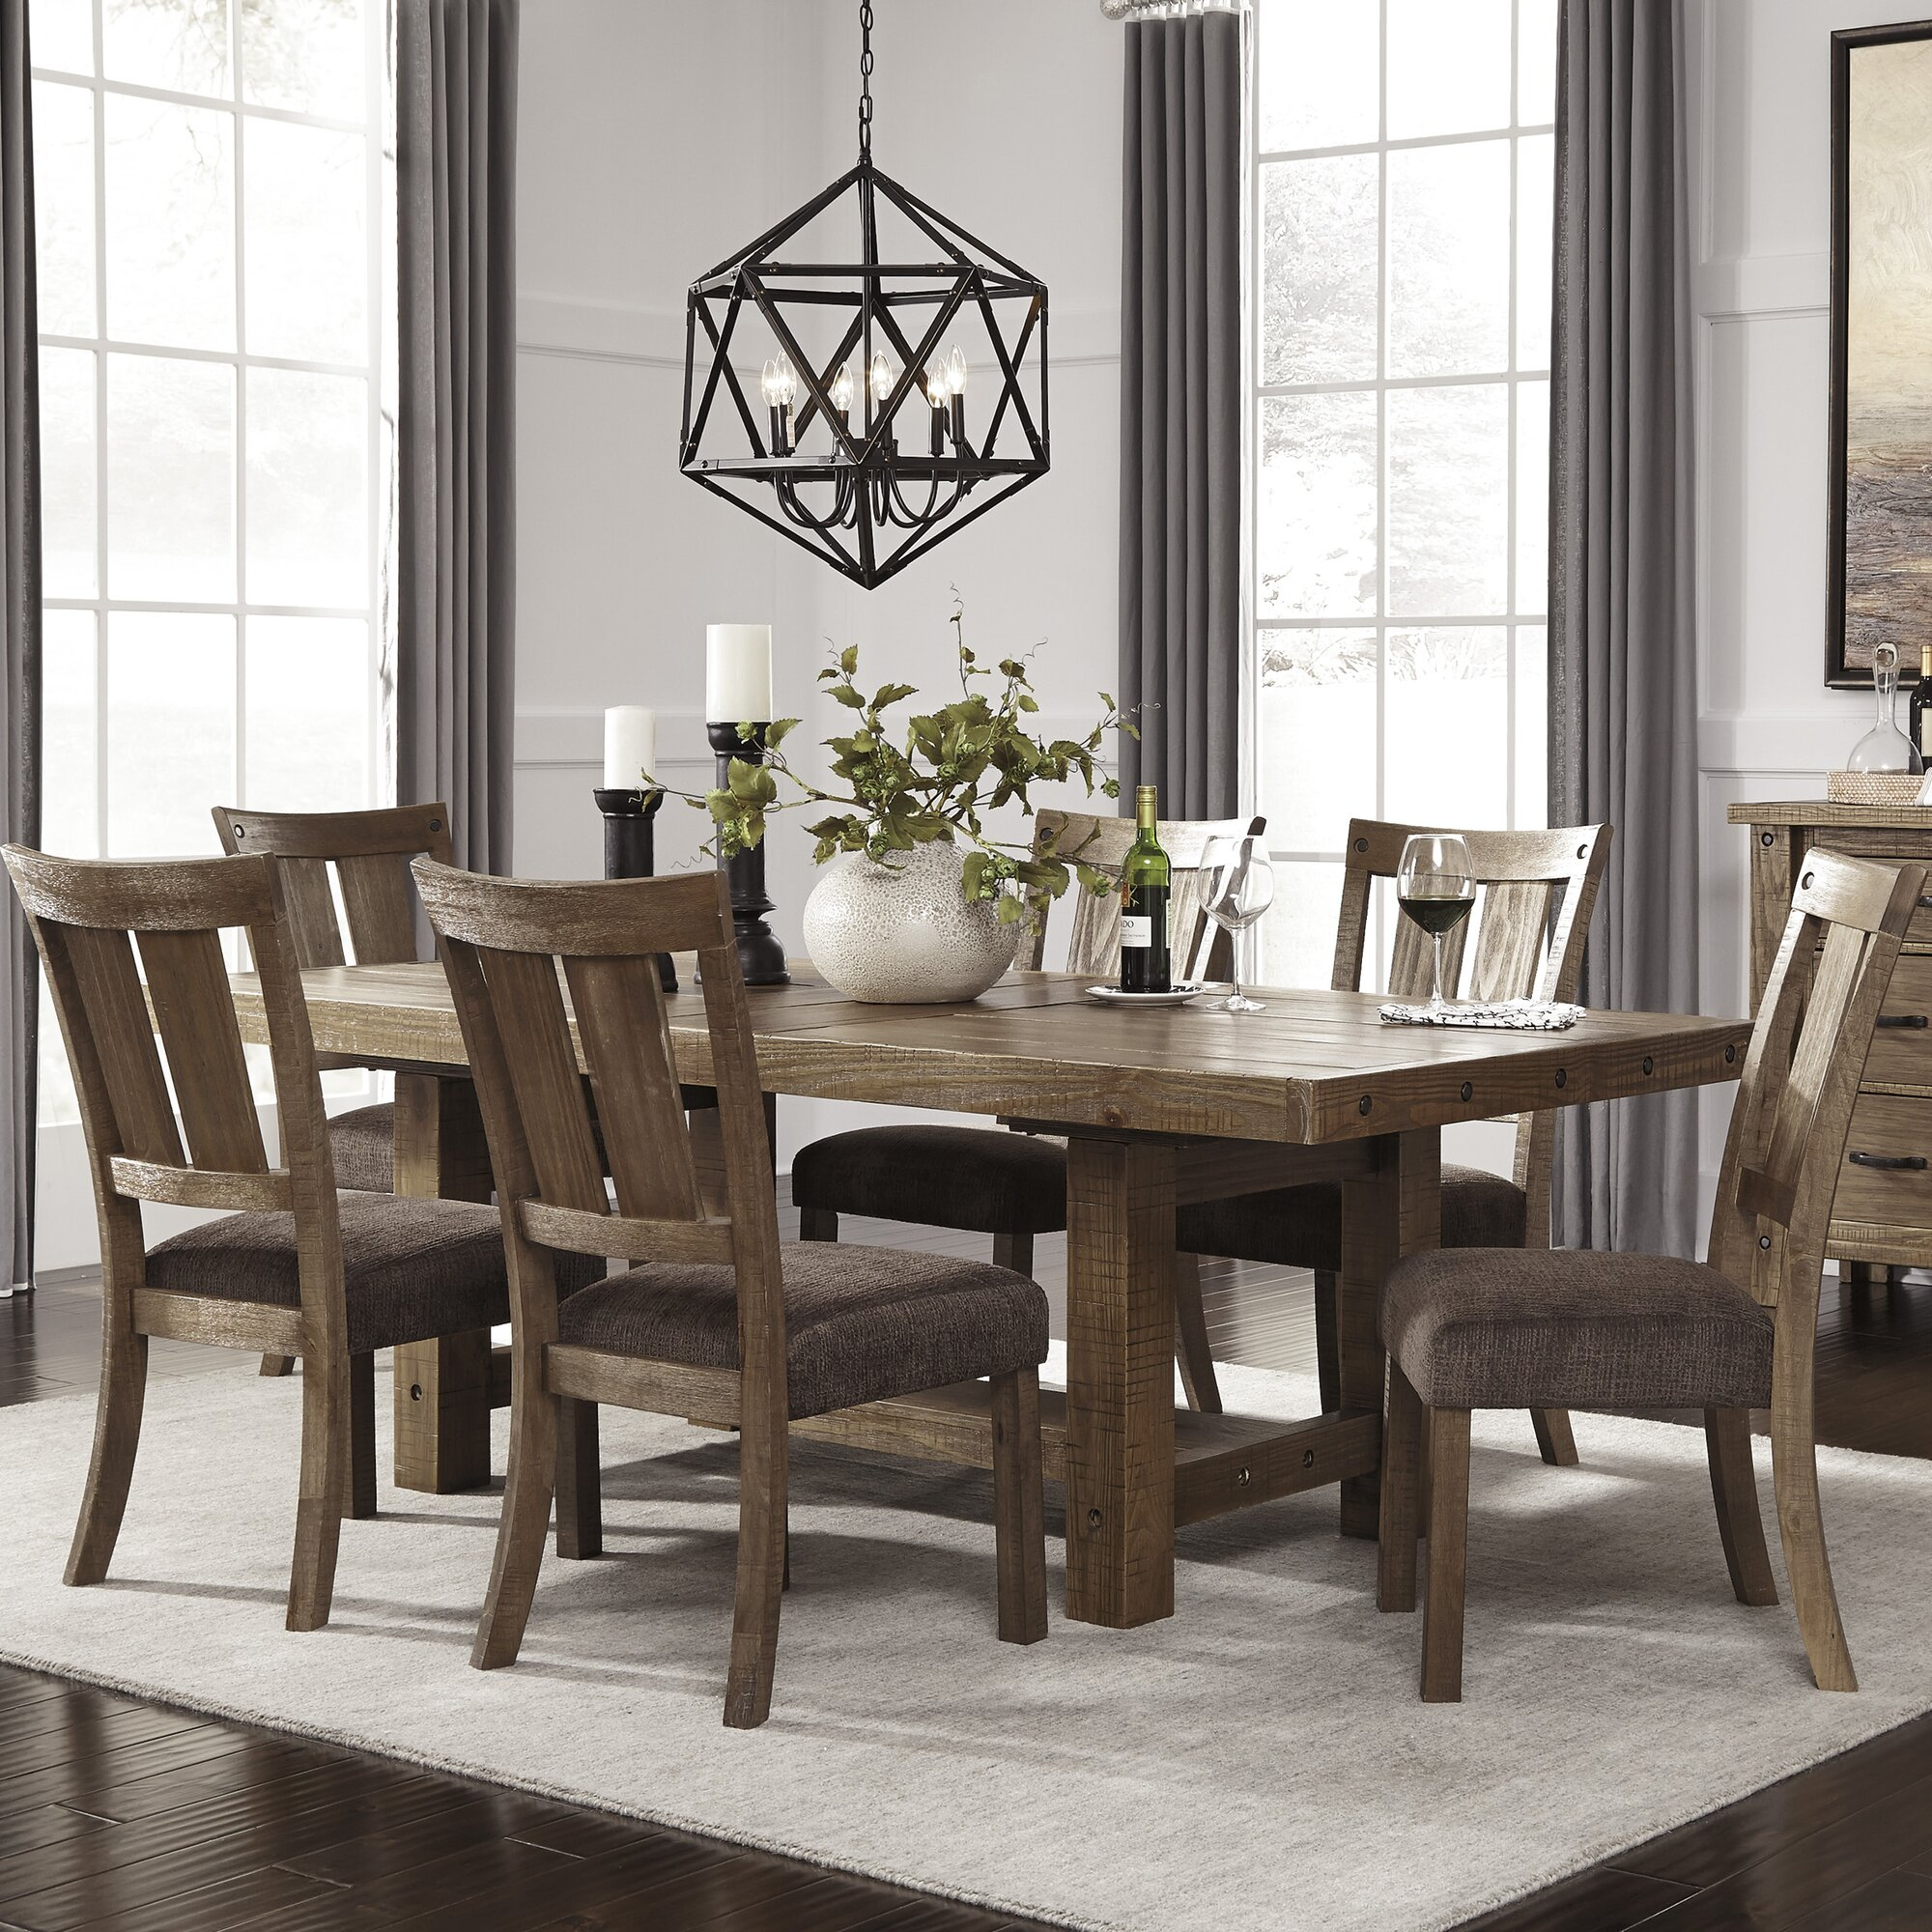 Chic 12 Seater Dining Table Dimensions modern rosita 10 seater dining table and chairs table 888x591 123kb Etolin Counter Height Extendable Dining Table